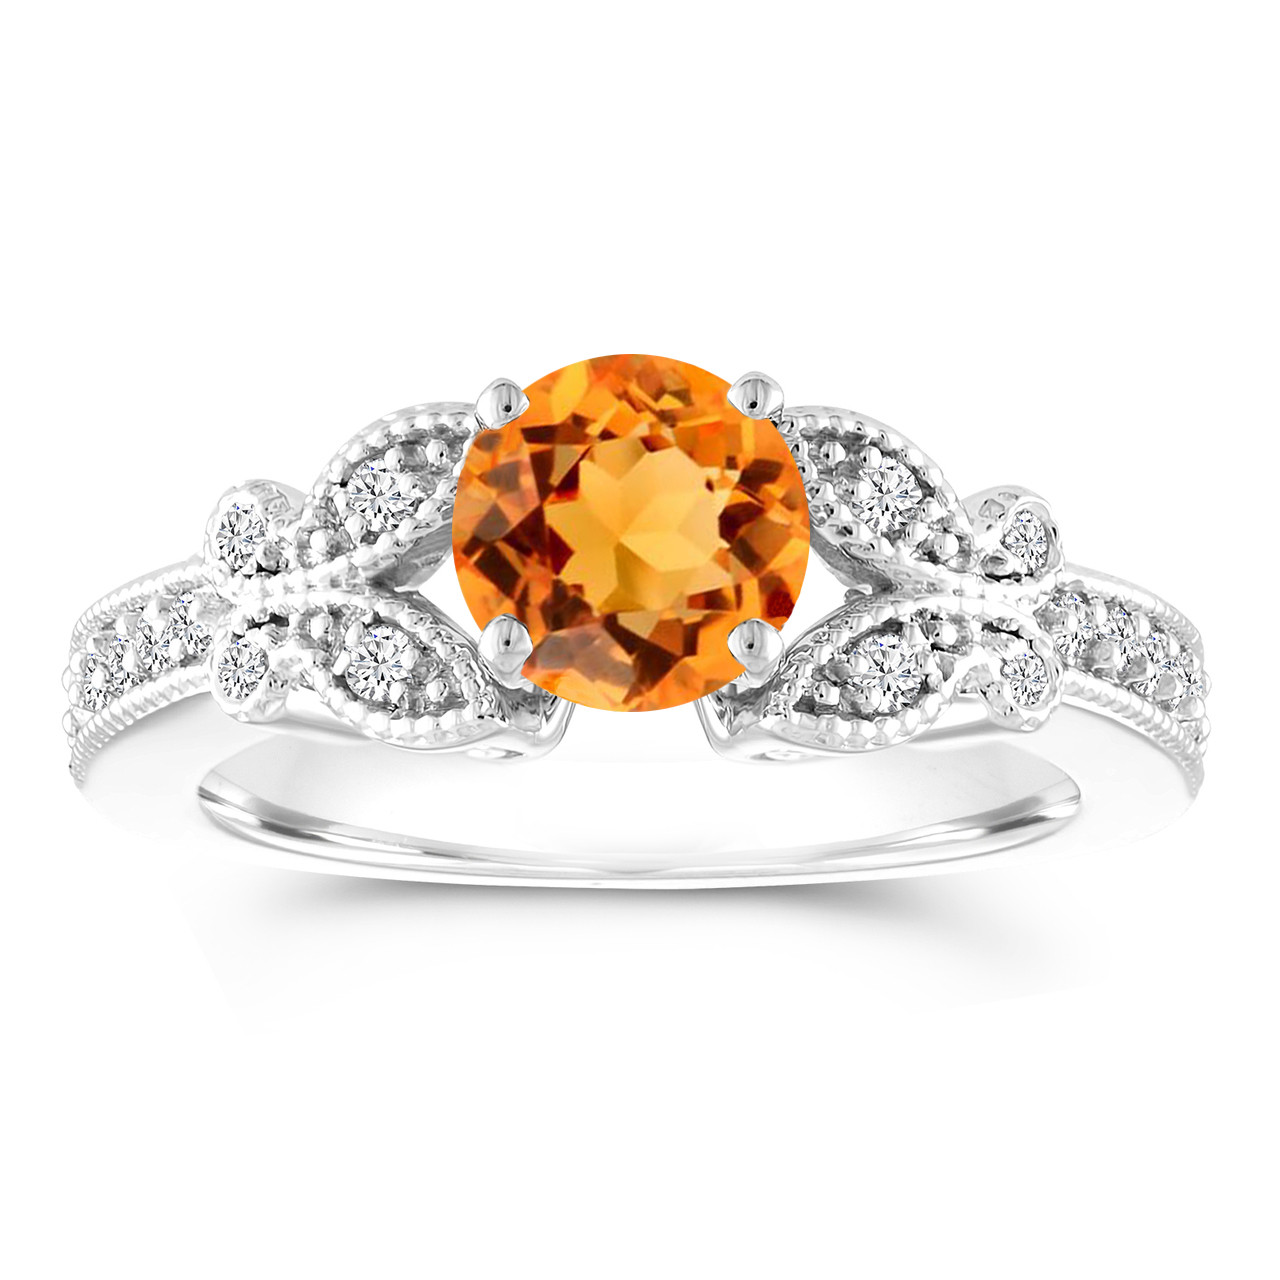 1 18 Carat Citrine Engagement Ring, Citrine & Diamonds Butterfly Ring, 14K  White Gold Handmade Unique